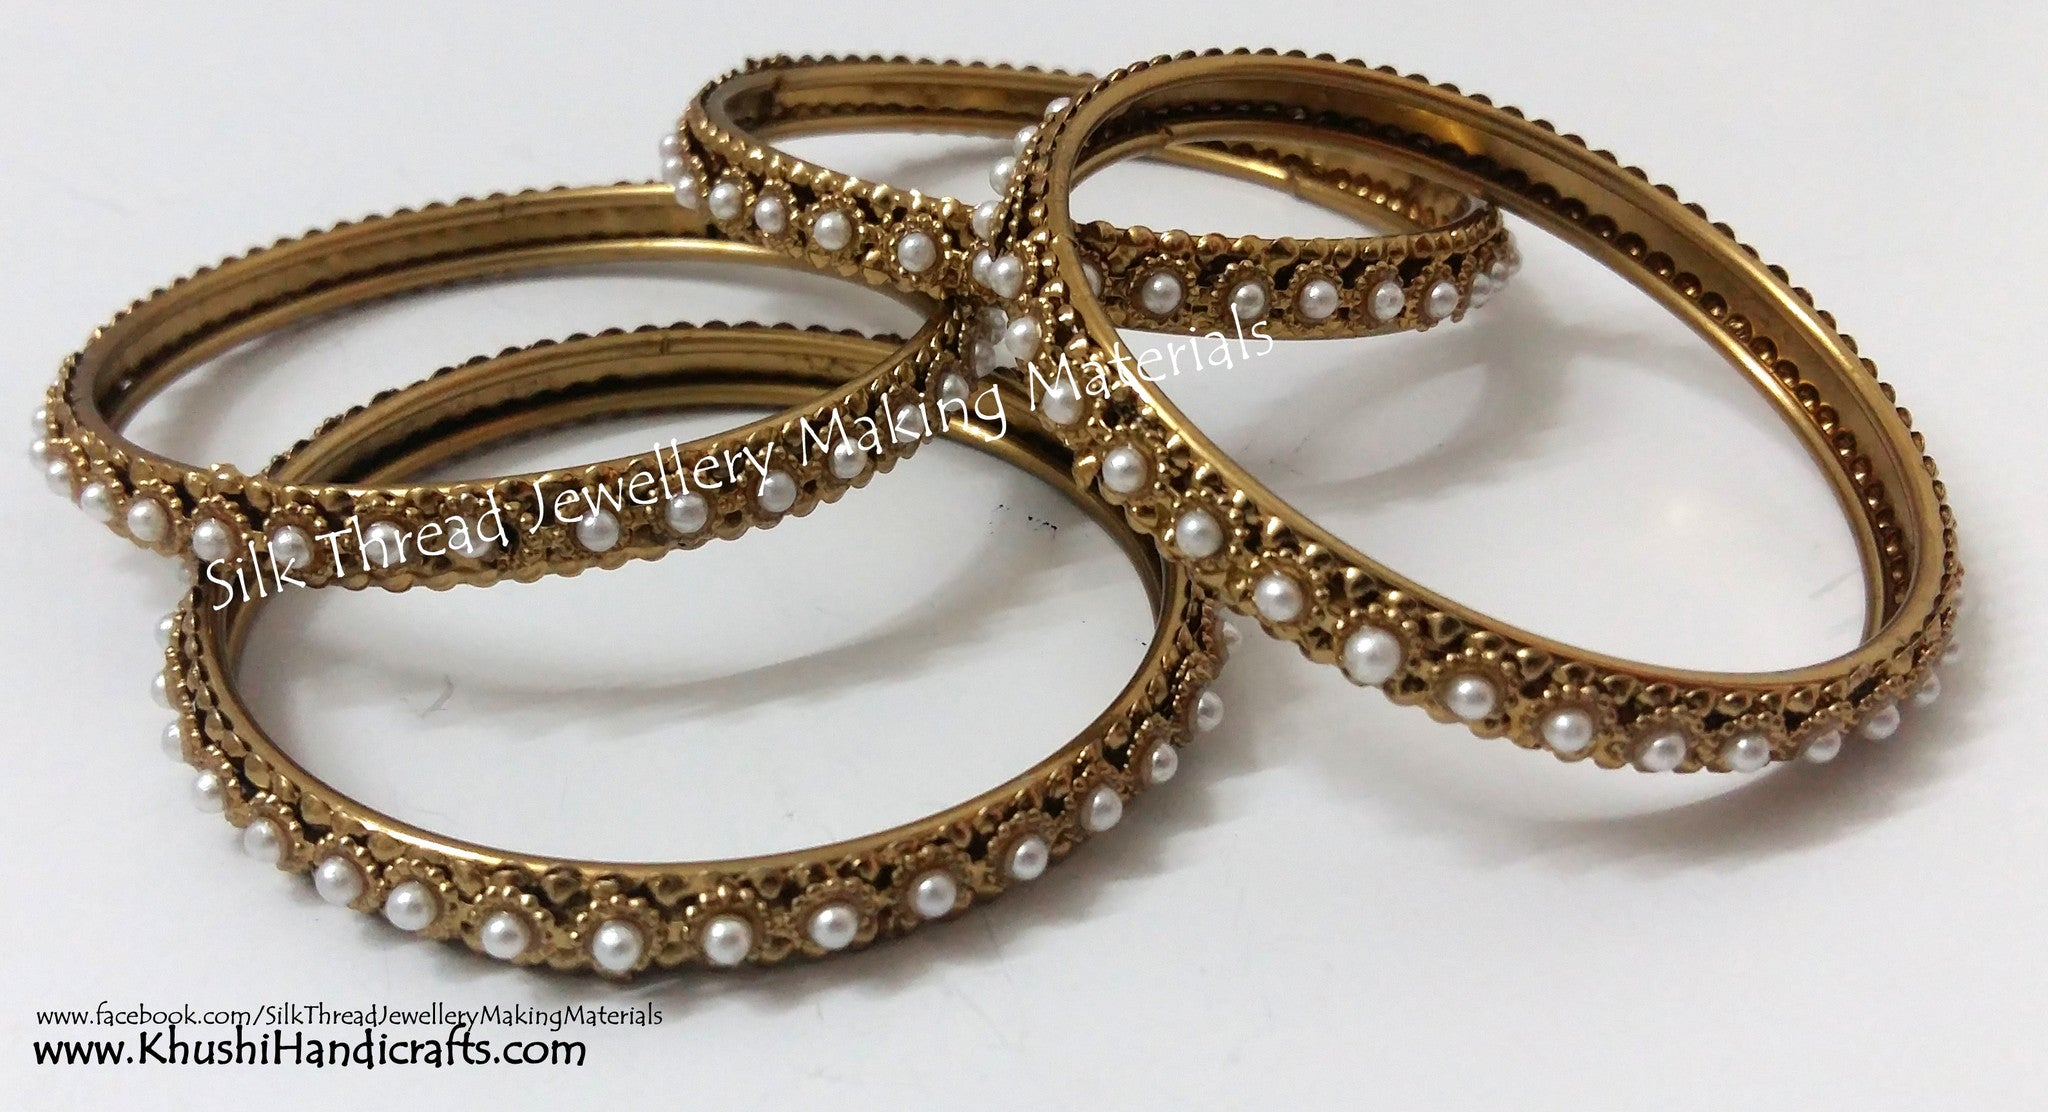 brass bangles a kada home bangdi bazaar metal smart